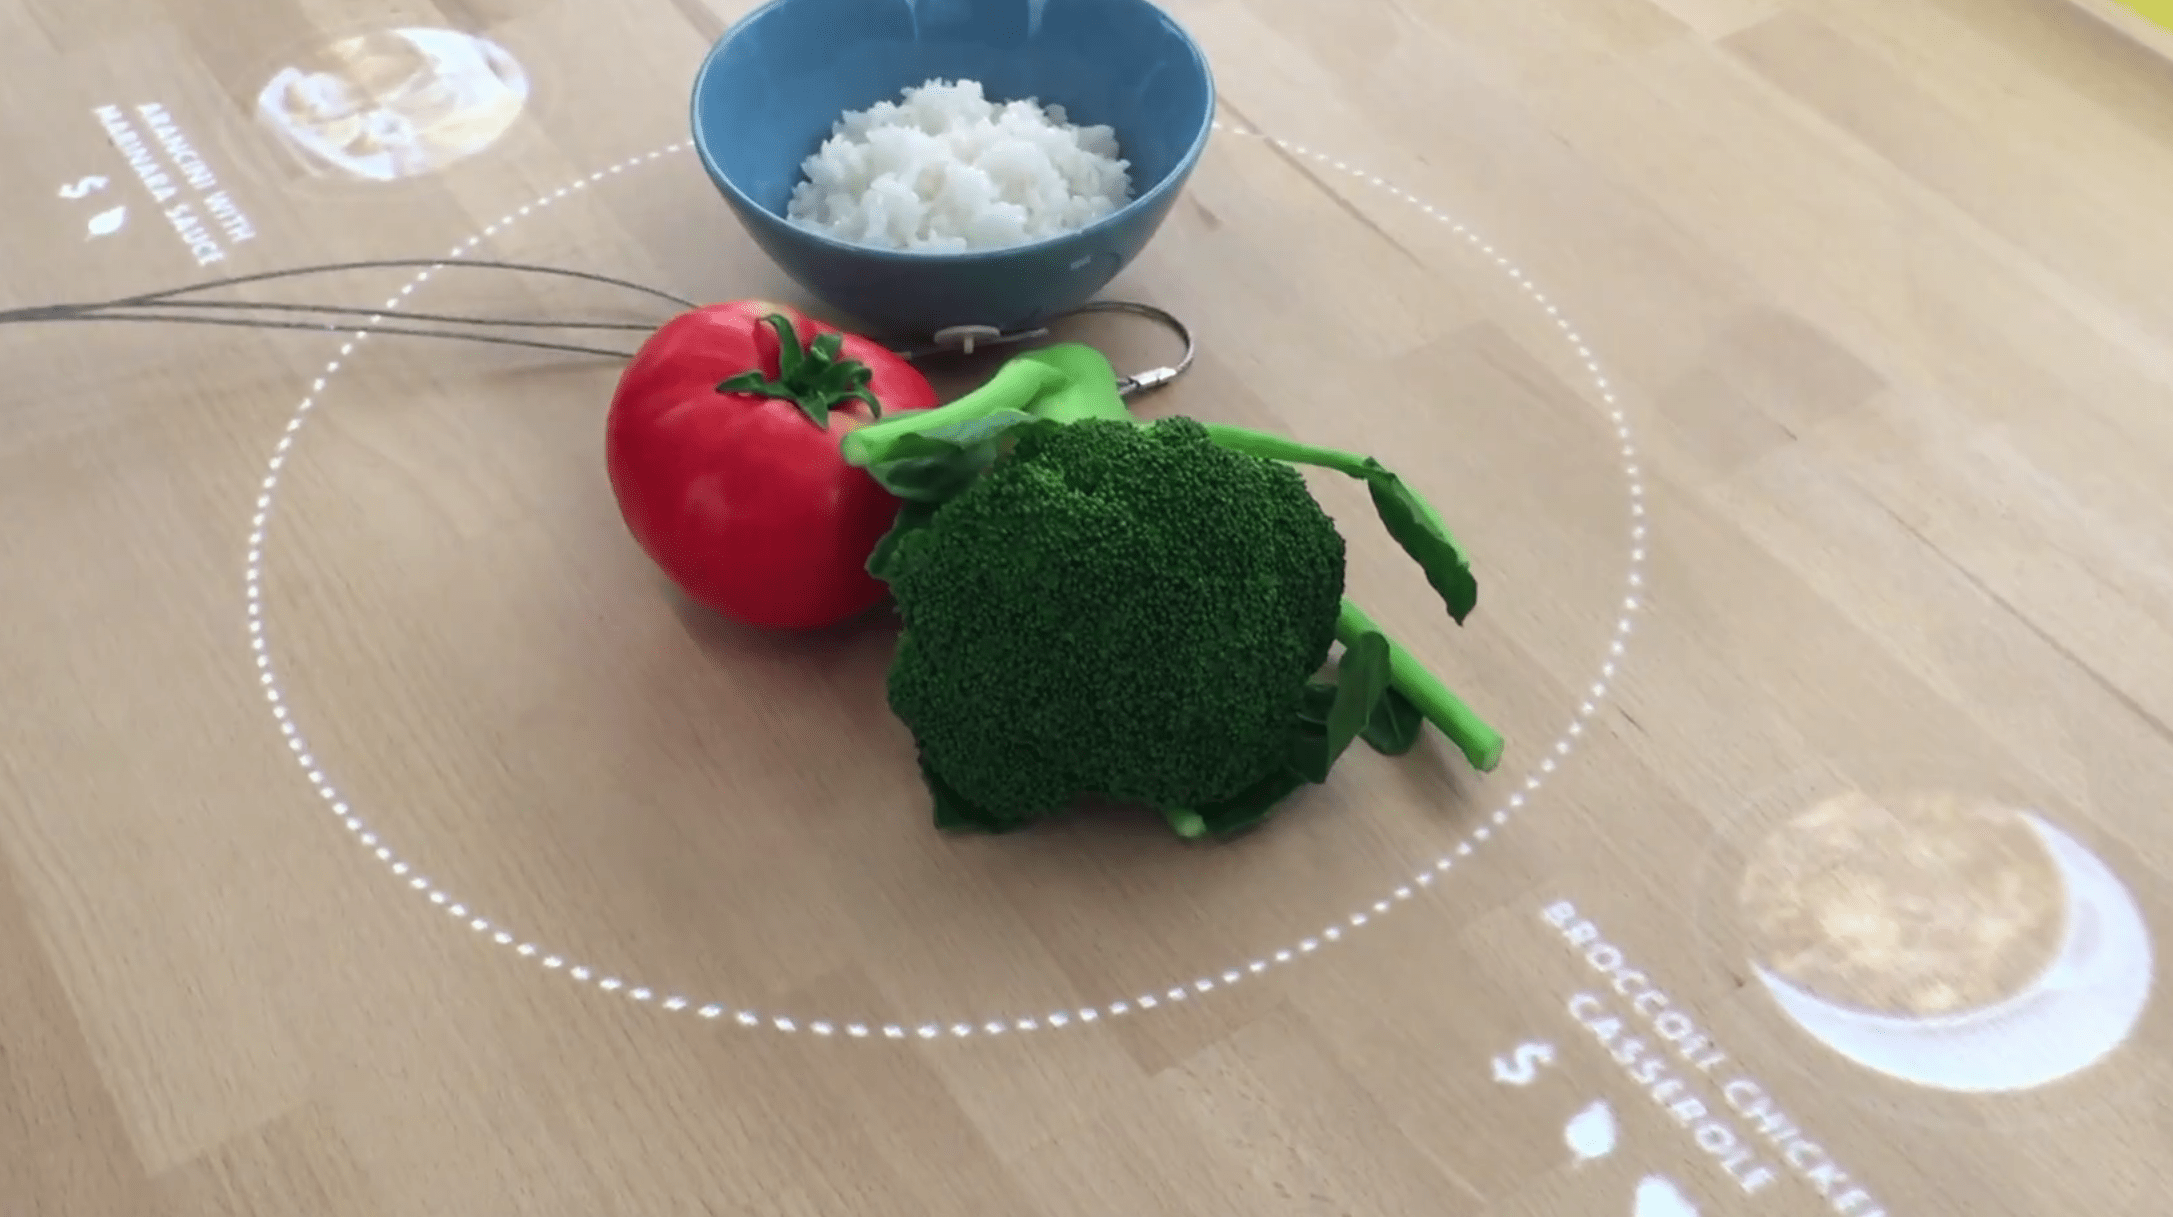 IKEA imagine la cuisine connectée de 2025